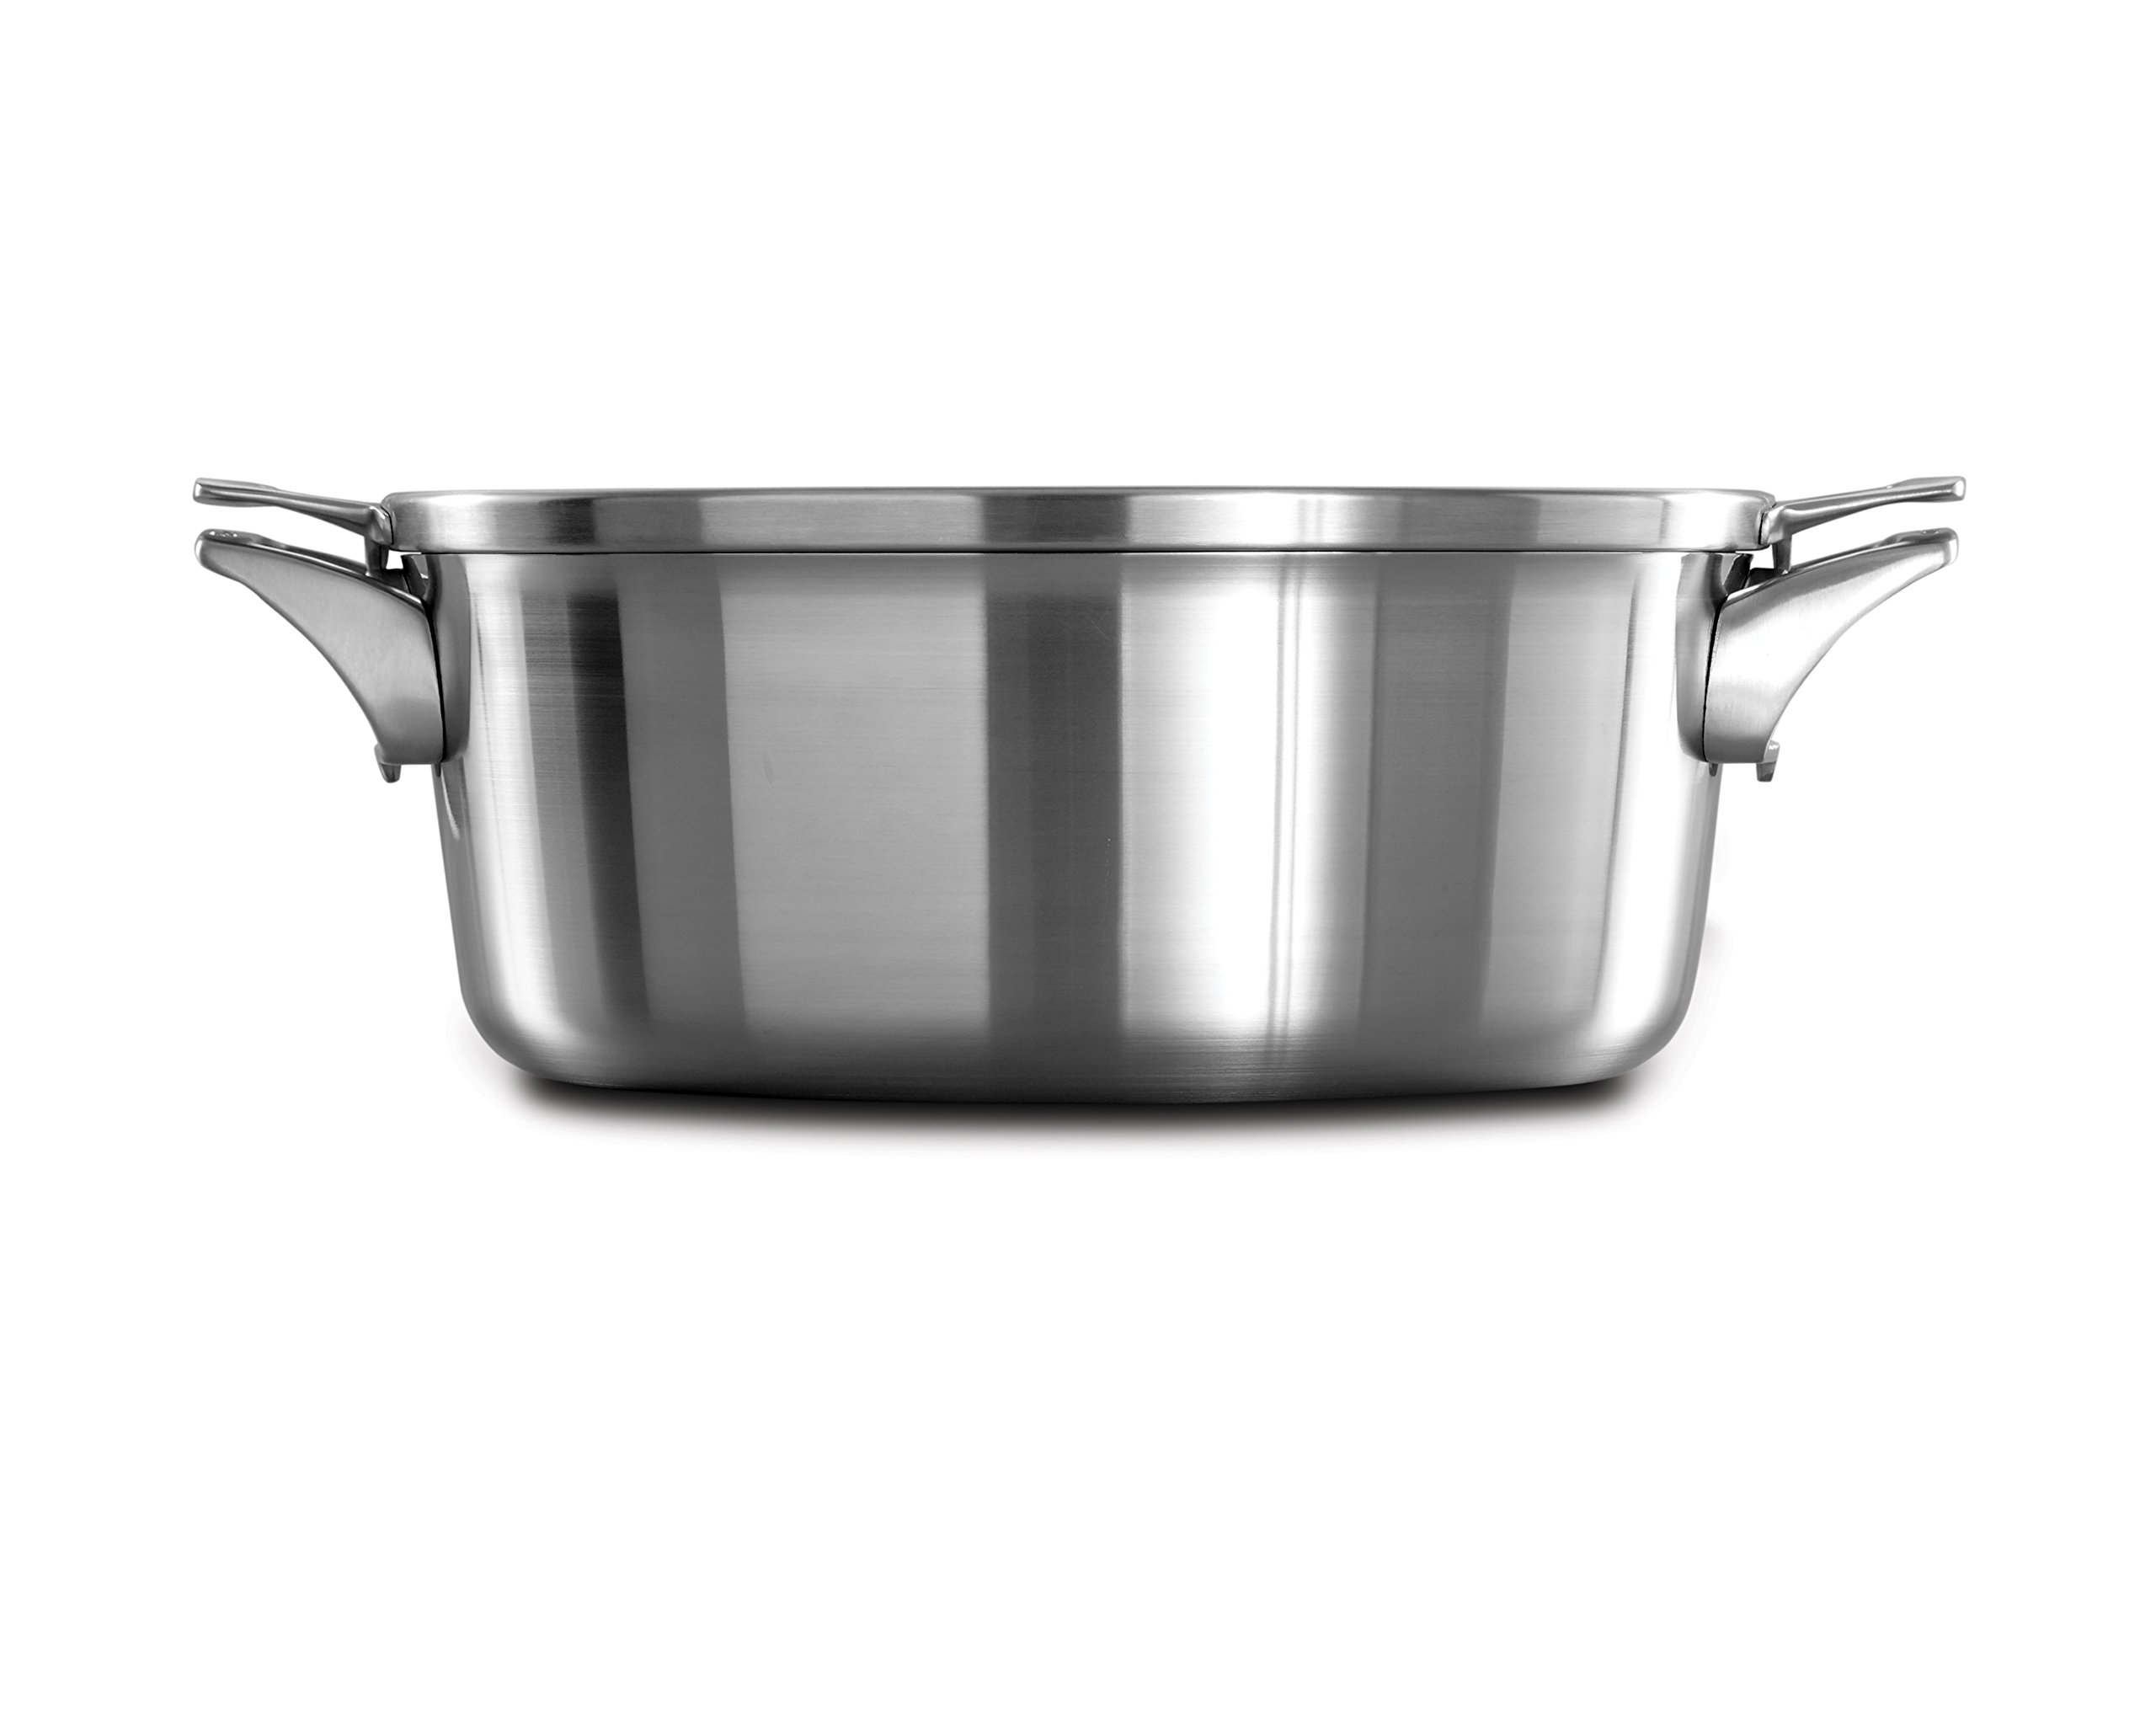 Calphalon Premier Space Saving Stainless Steel 8.5qt Dutch Oven with Cover